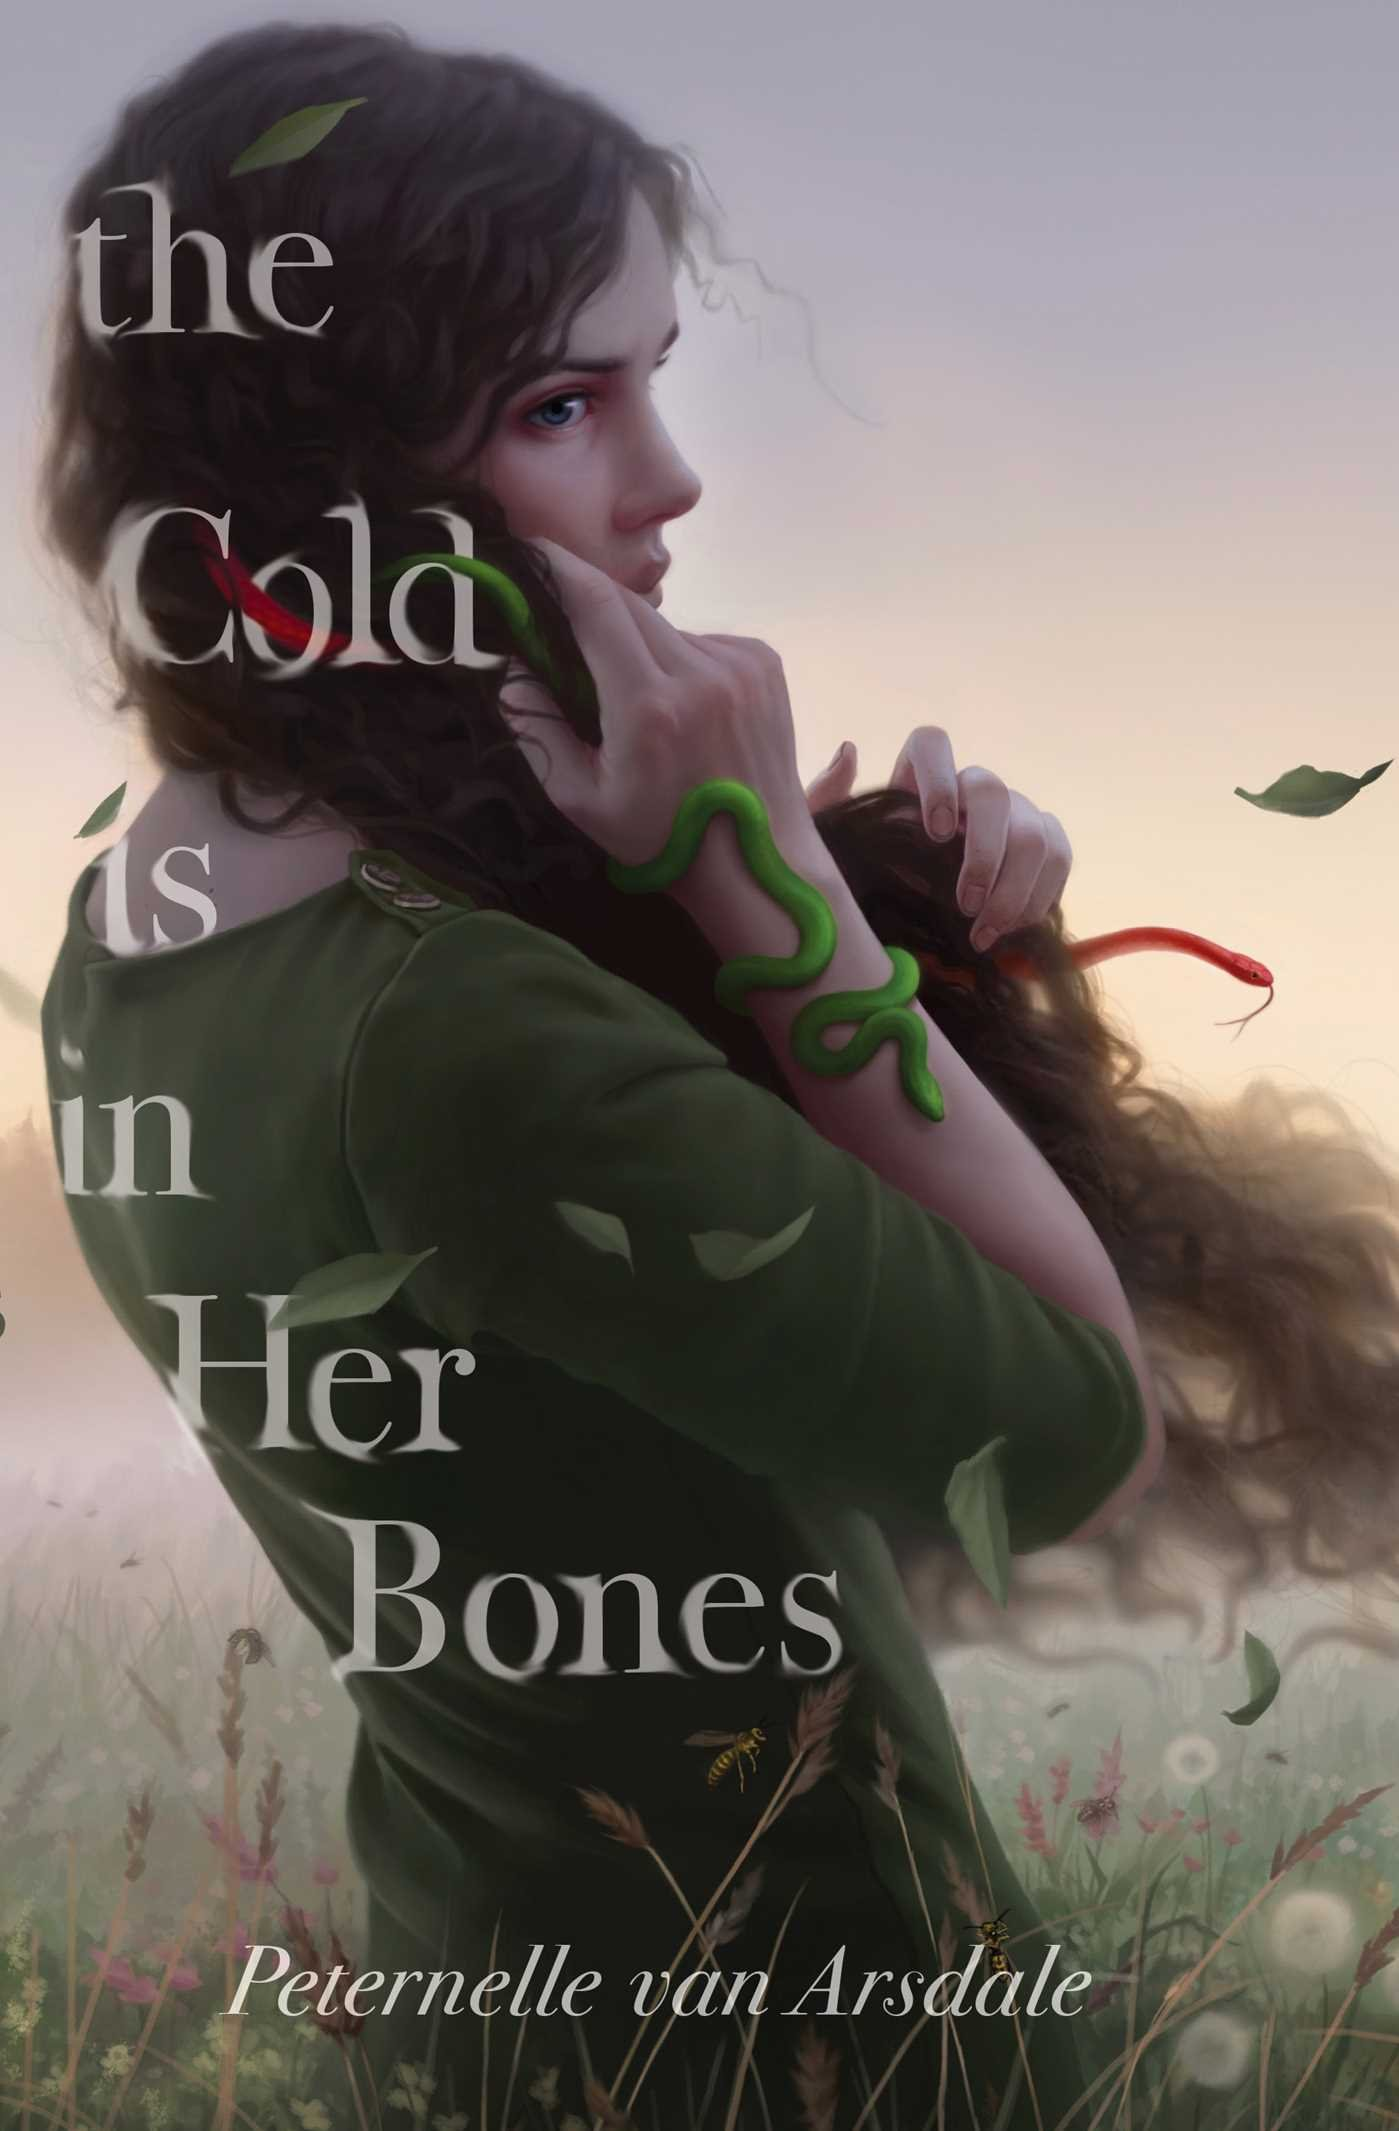 Image result for the cold is in her bones